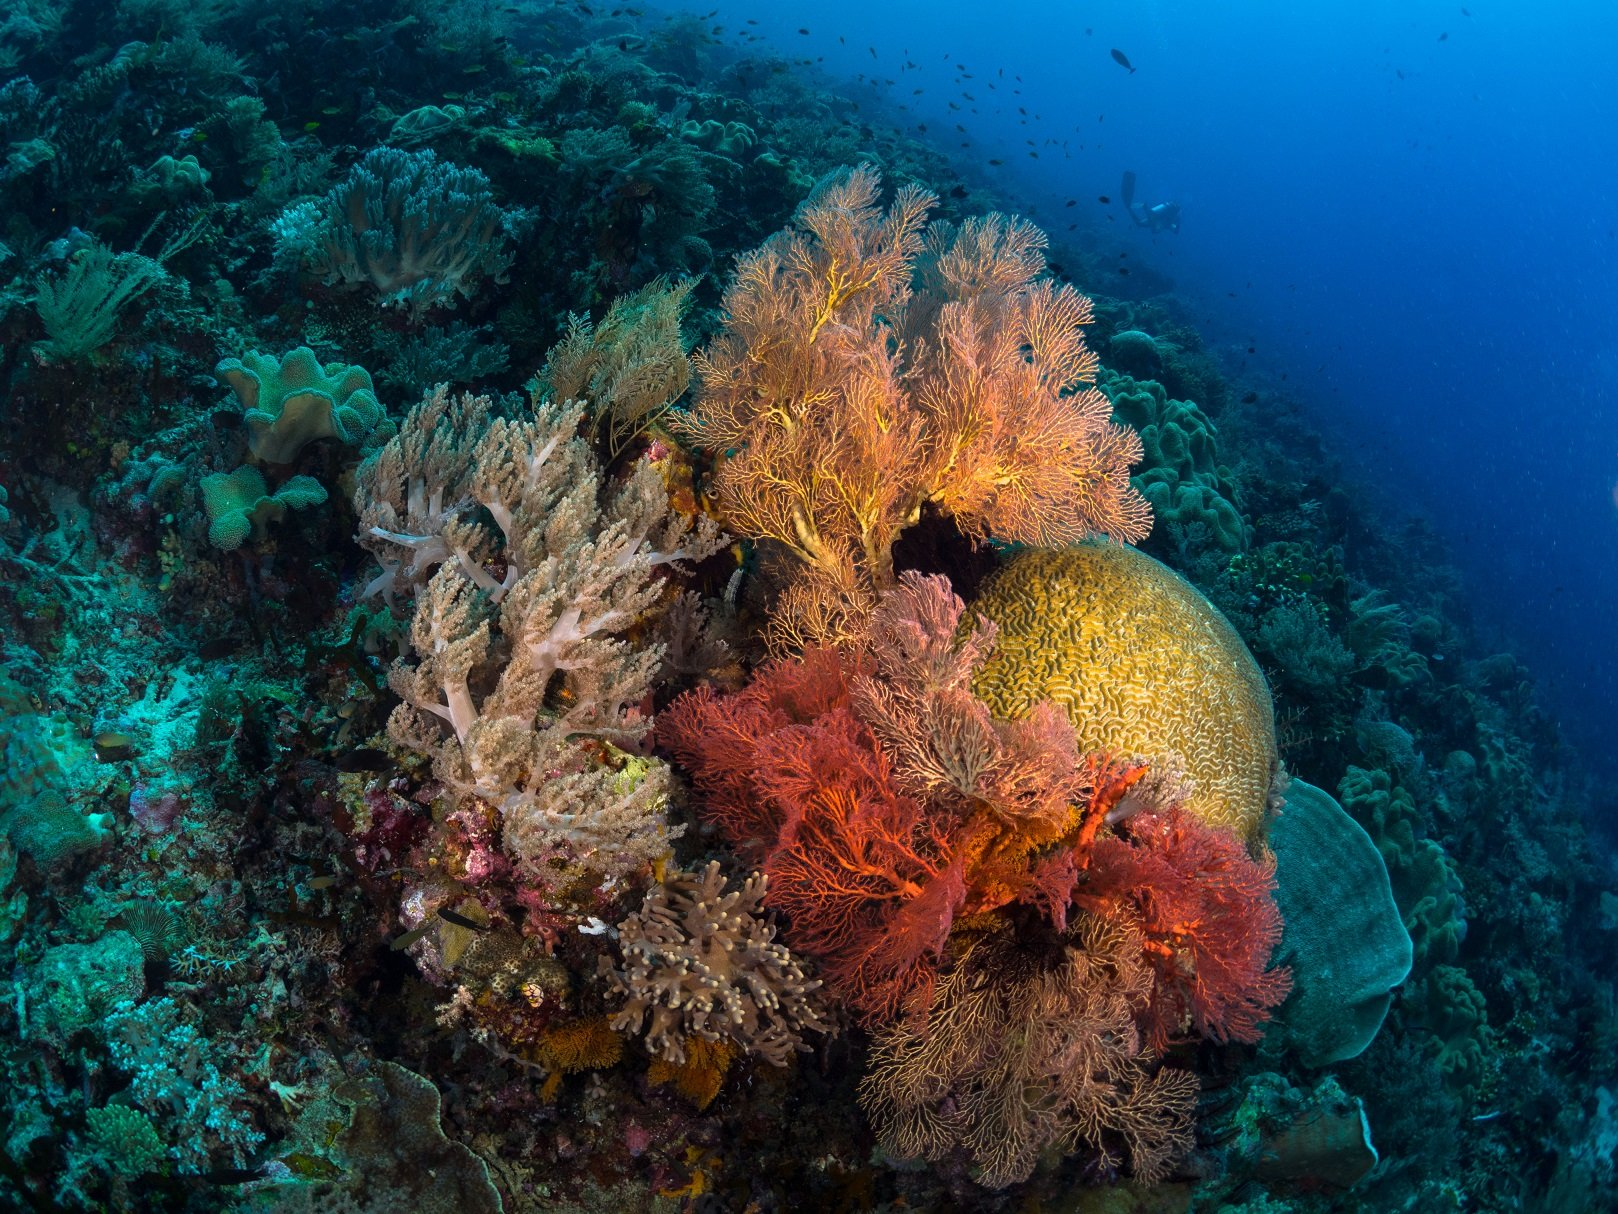 colorful hard and soft corals encountered while diving with Papua Explorers